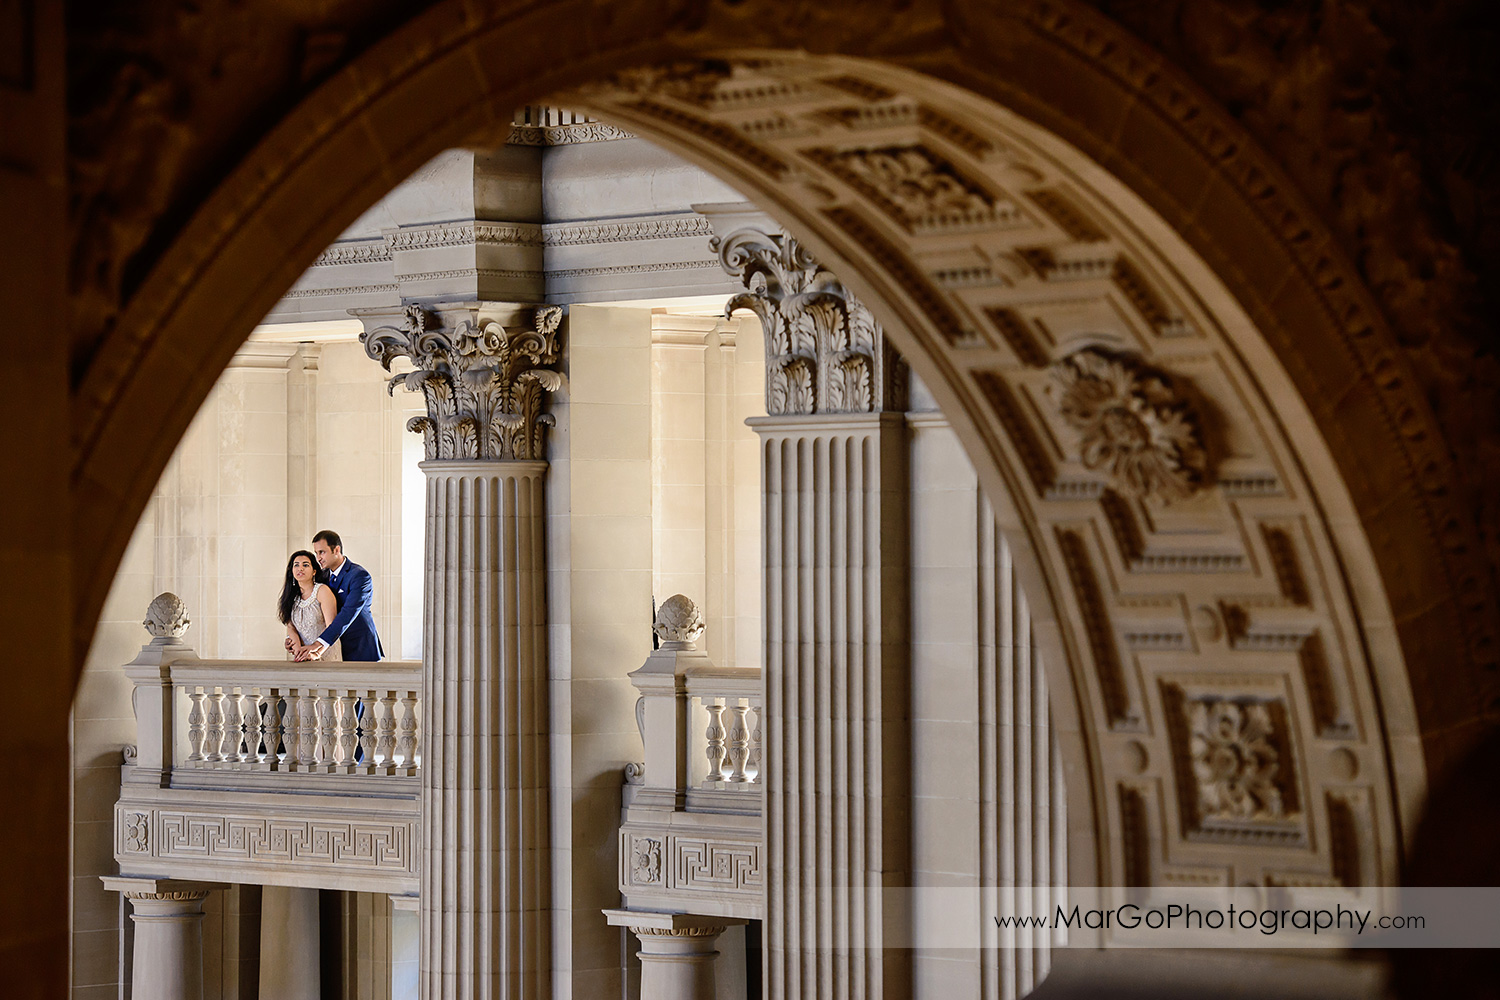 woman in beige dress and man in navy blue suit seen through the arch on the third floor of San Francisco City Hall